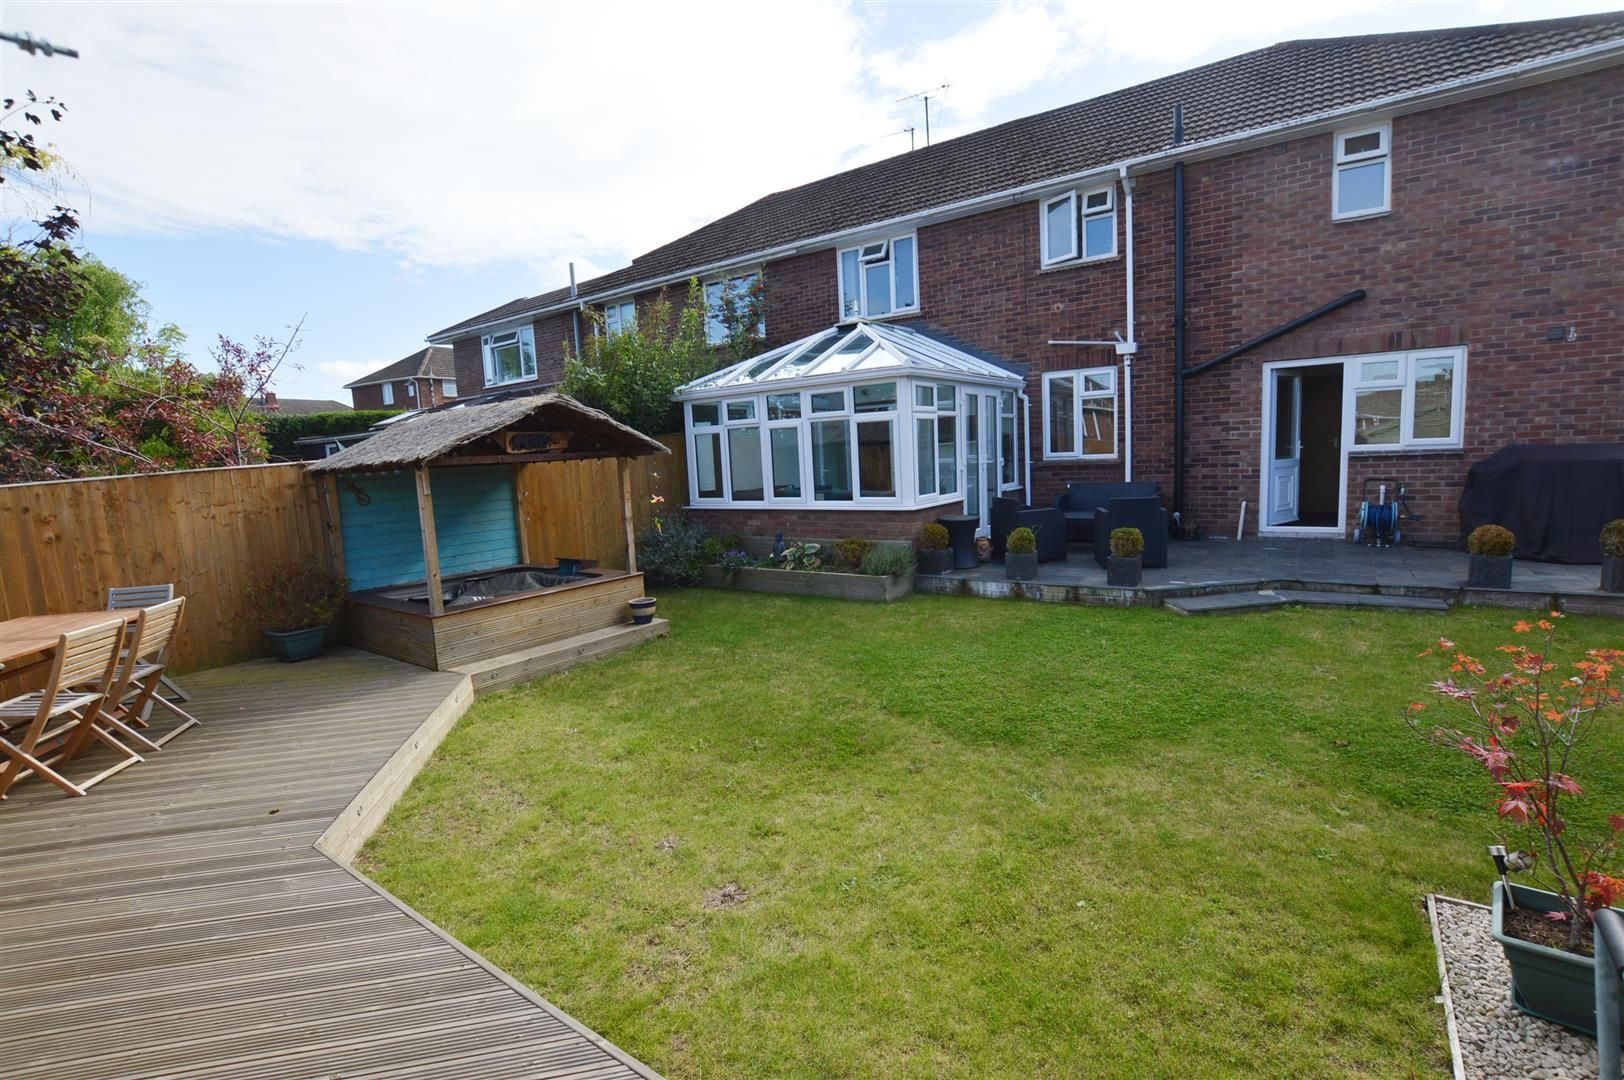 4 bed semi-detached for sale in Hereford 11